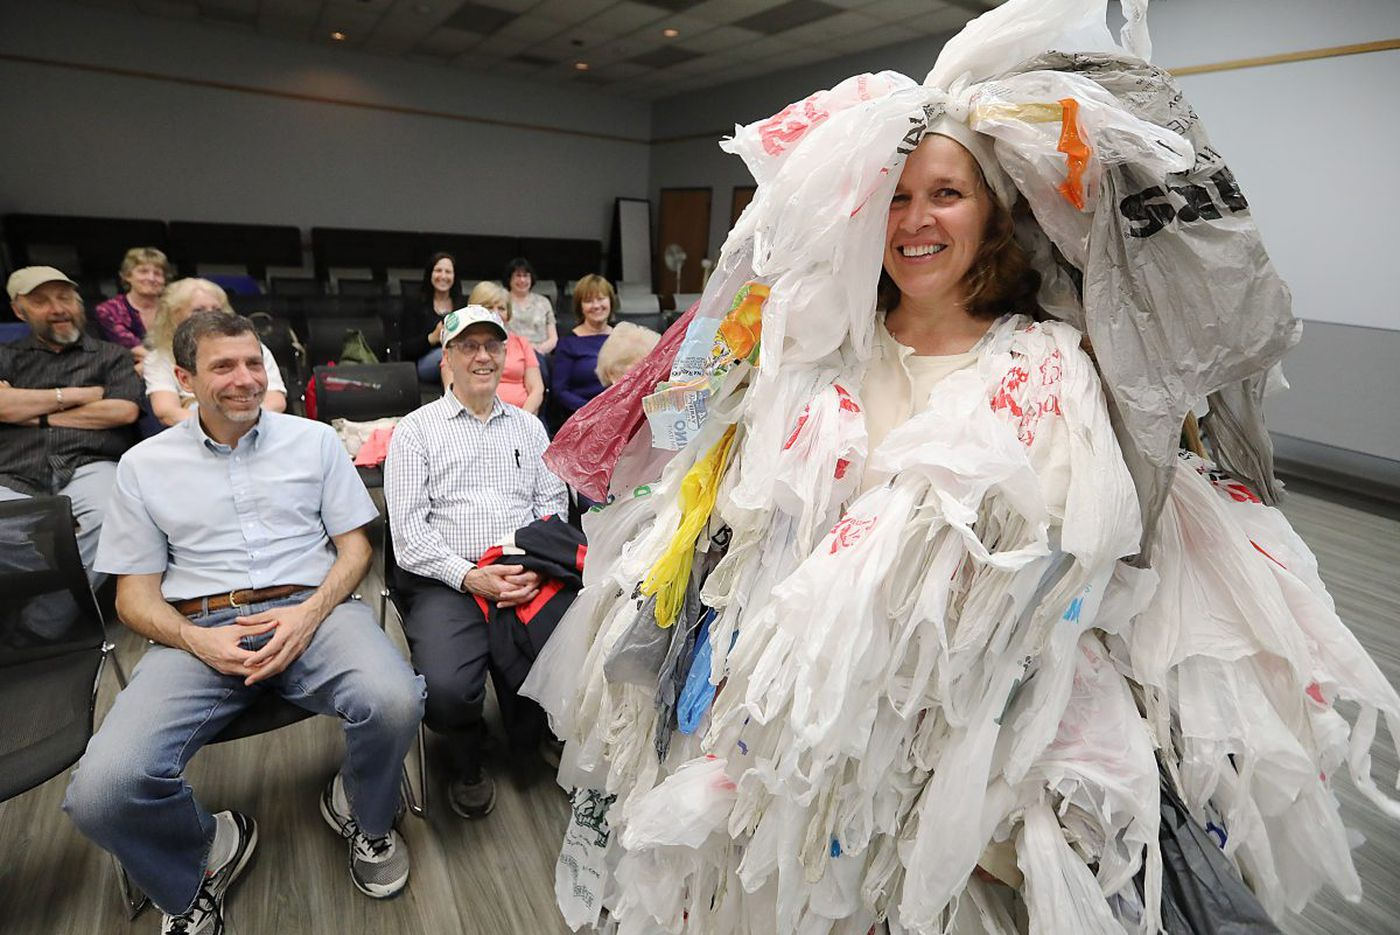 She's the bag monster from New Jersey and she wants you to quit plastic. So do I | Kevin Riordan